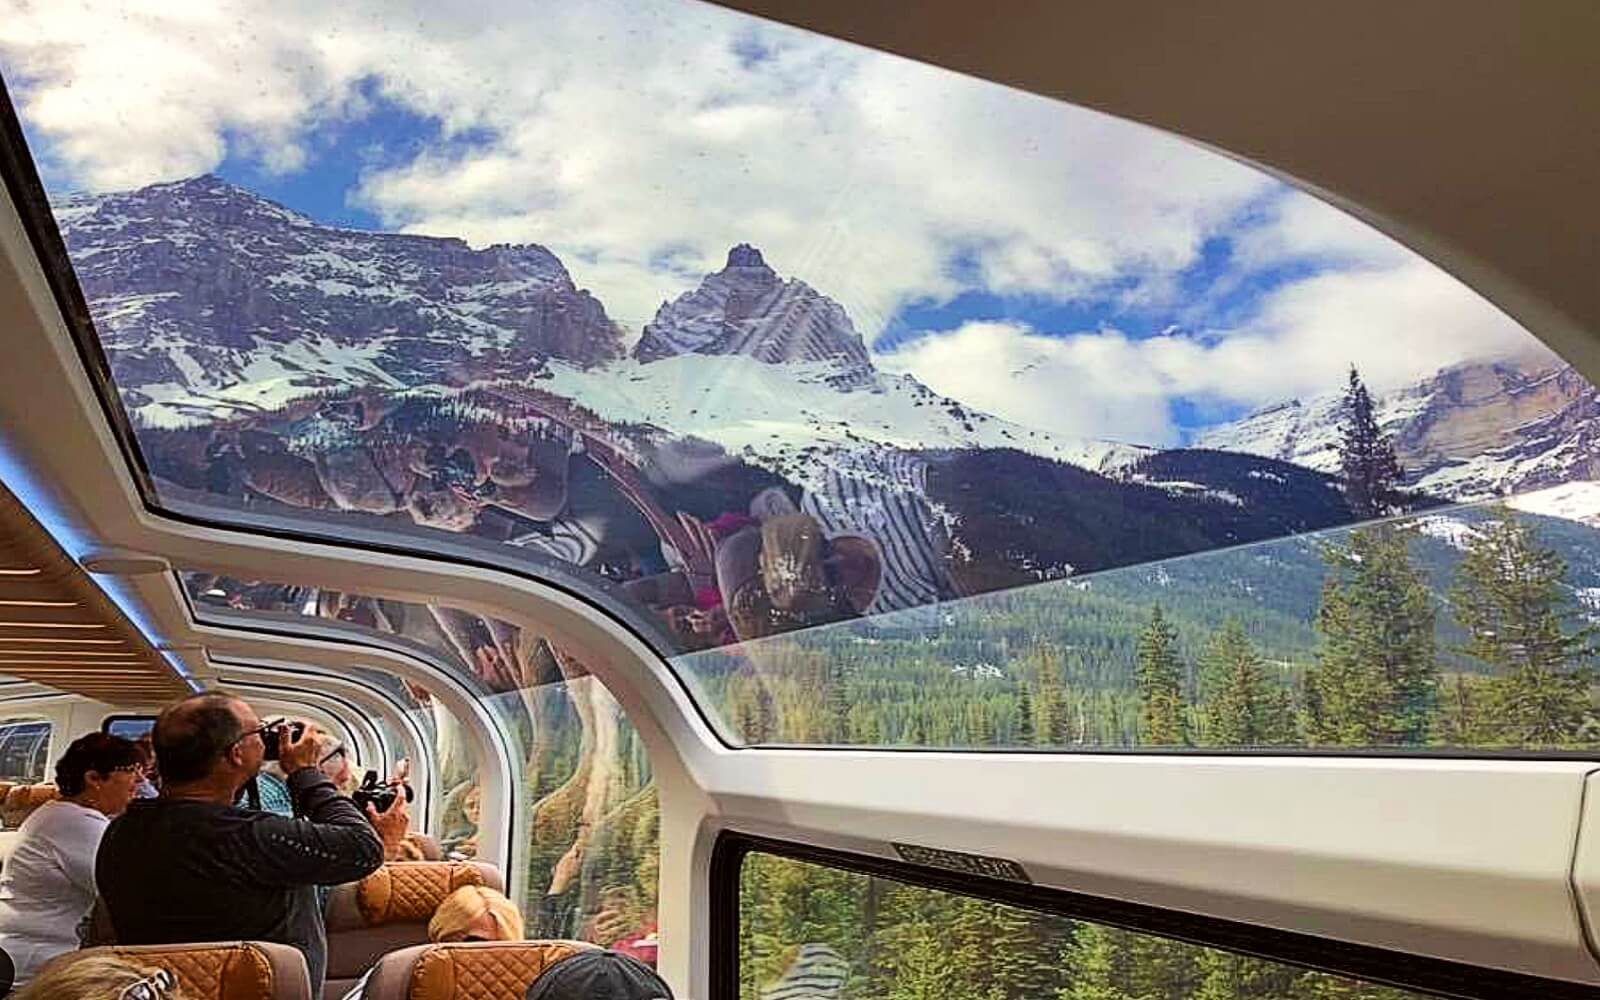 Passengers take pictures aboard the Rocky Mountaineer